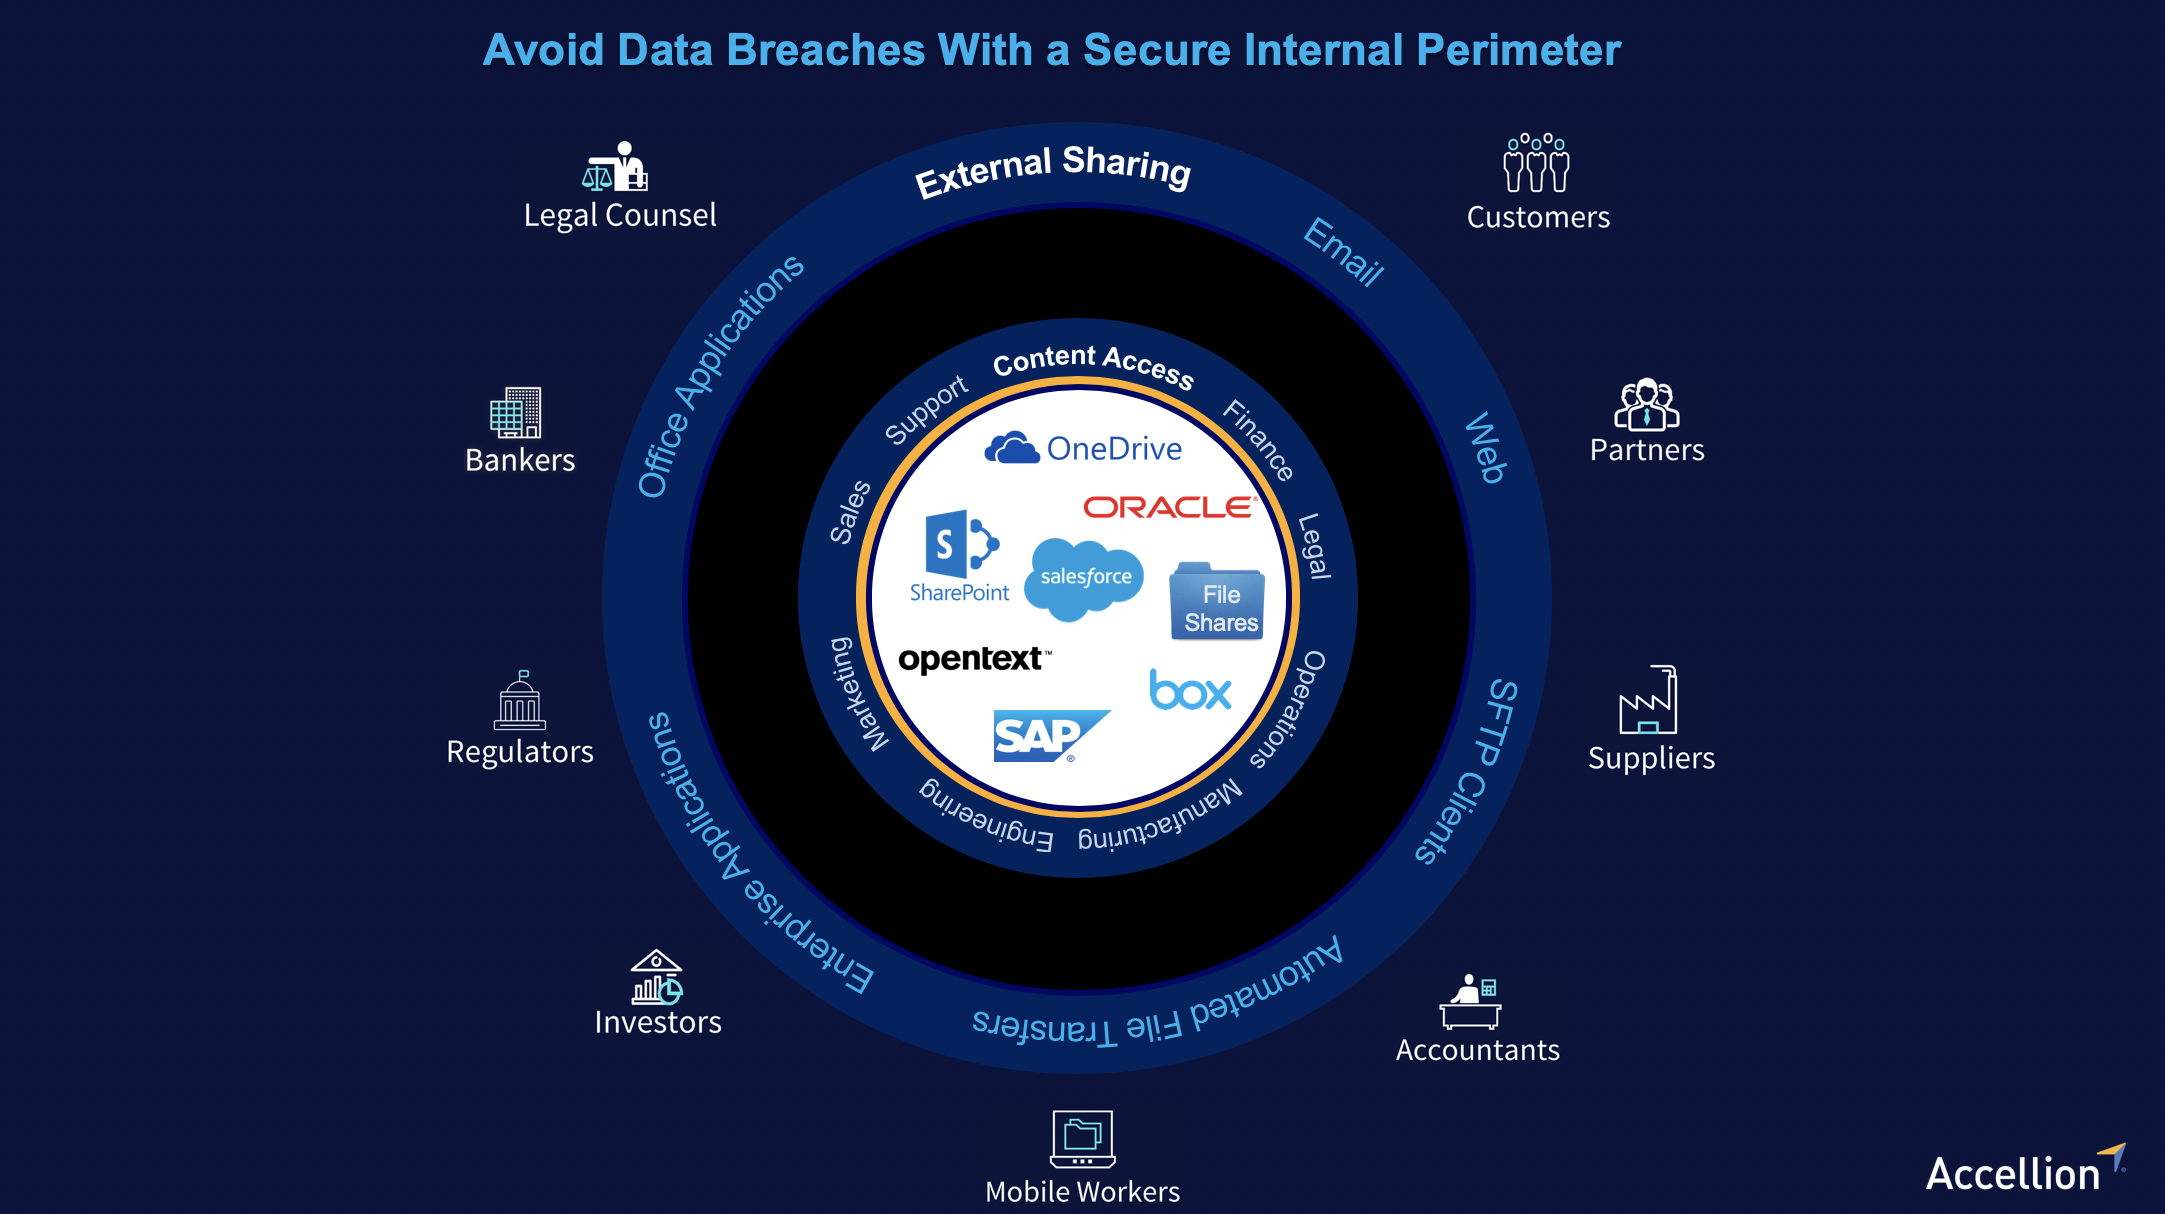 Avoid data breaches with a secure internal perimeter